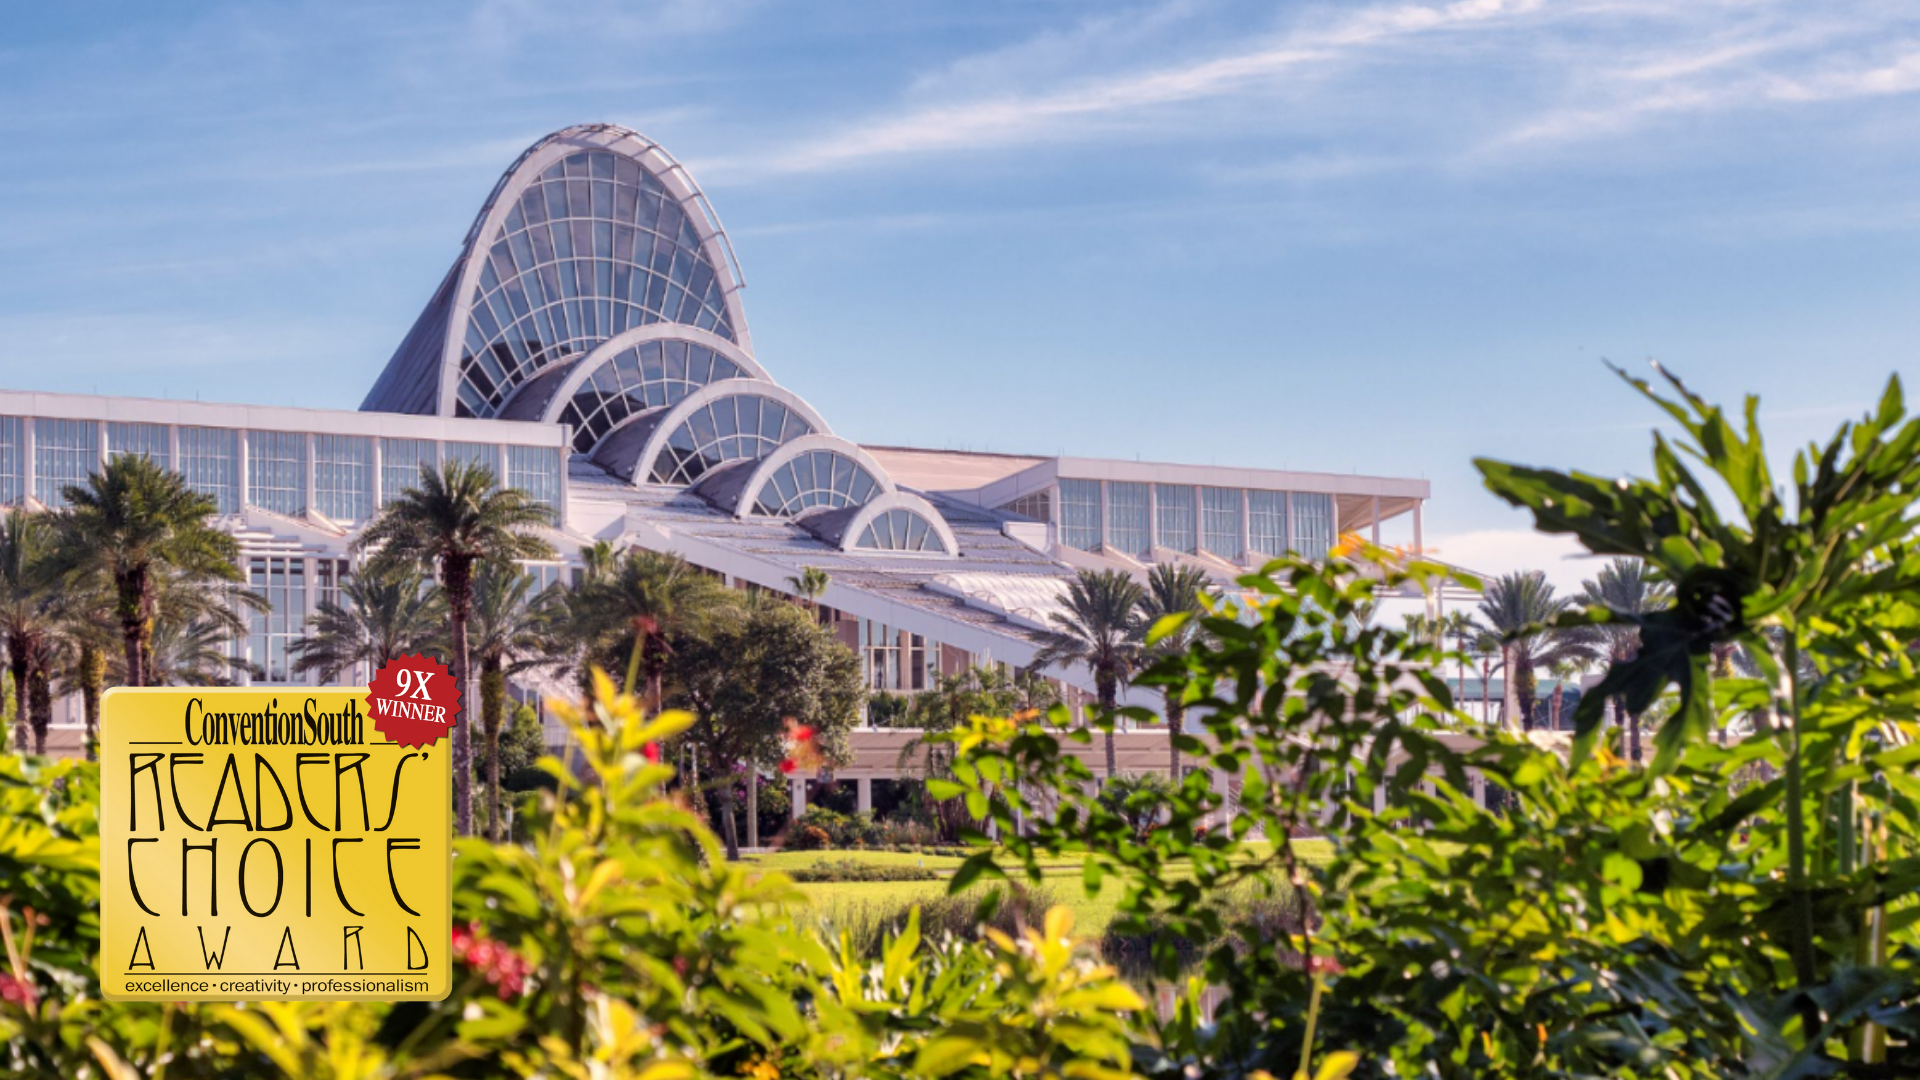 Orange County Convention Center Celebrates 2020 ConventionSouth Readers' Choice Award